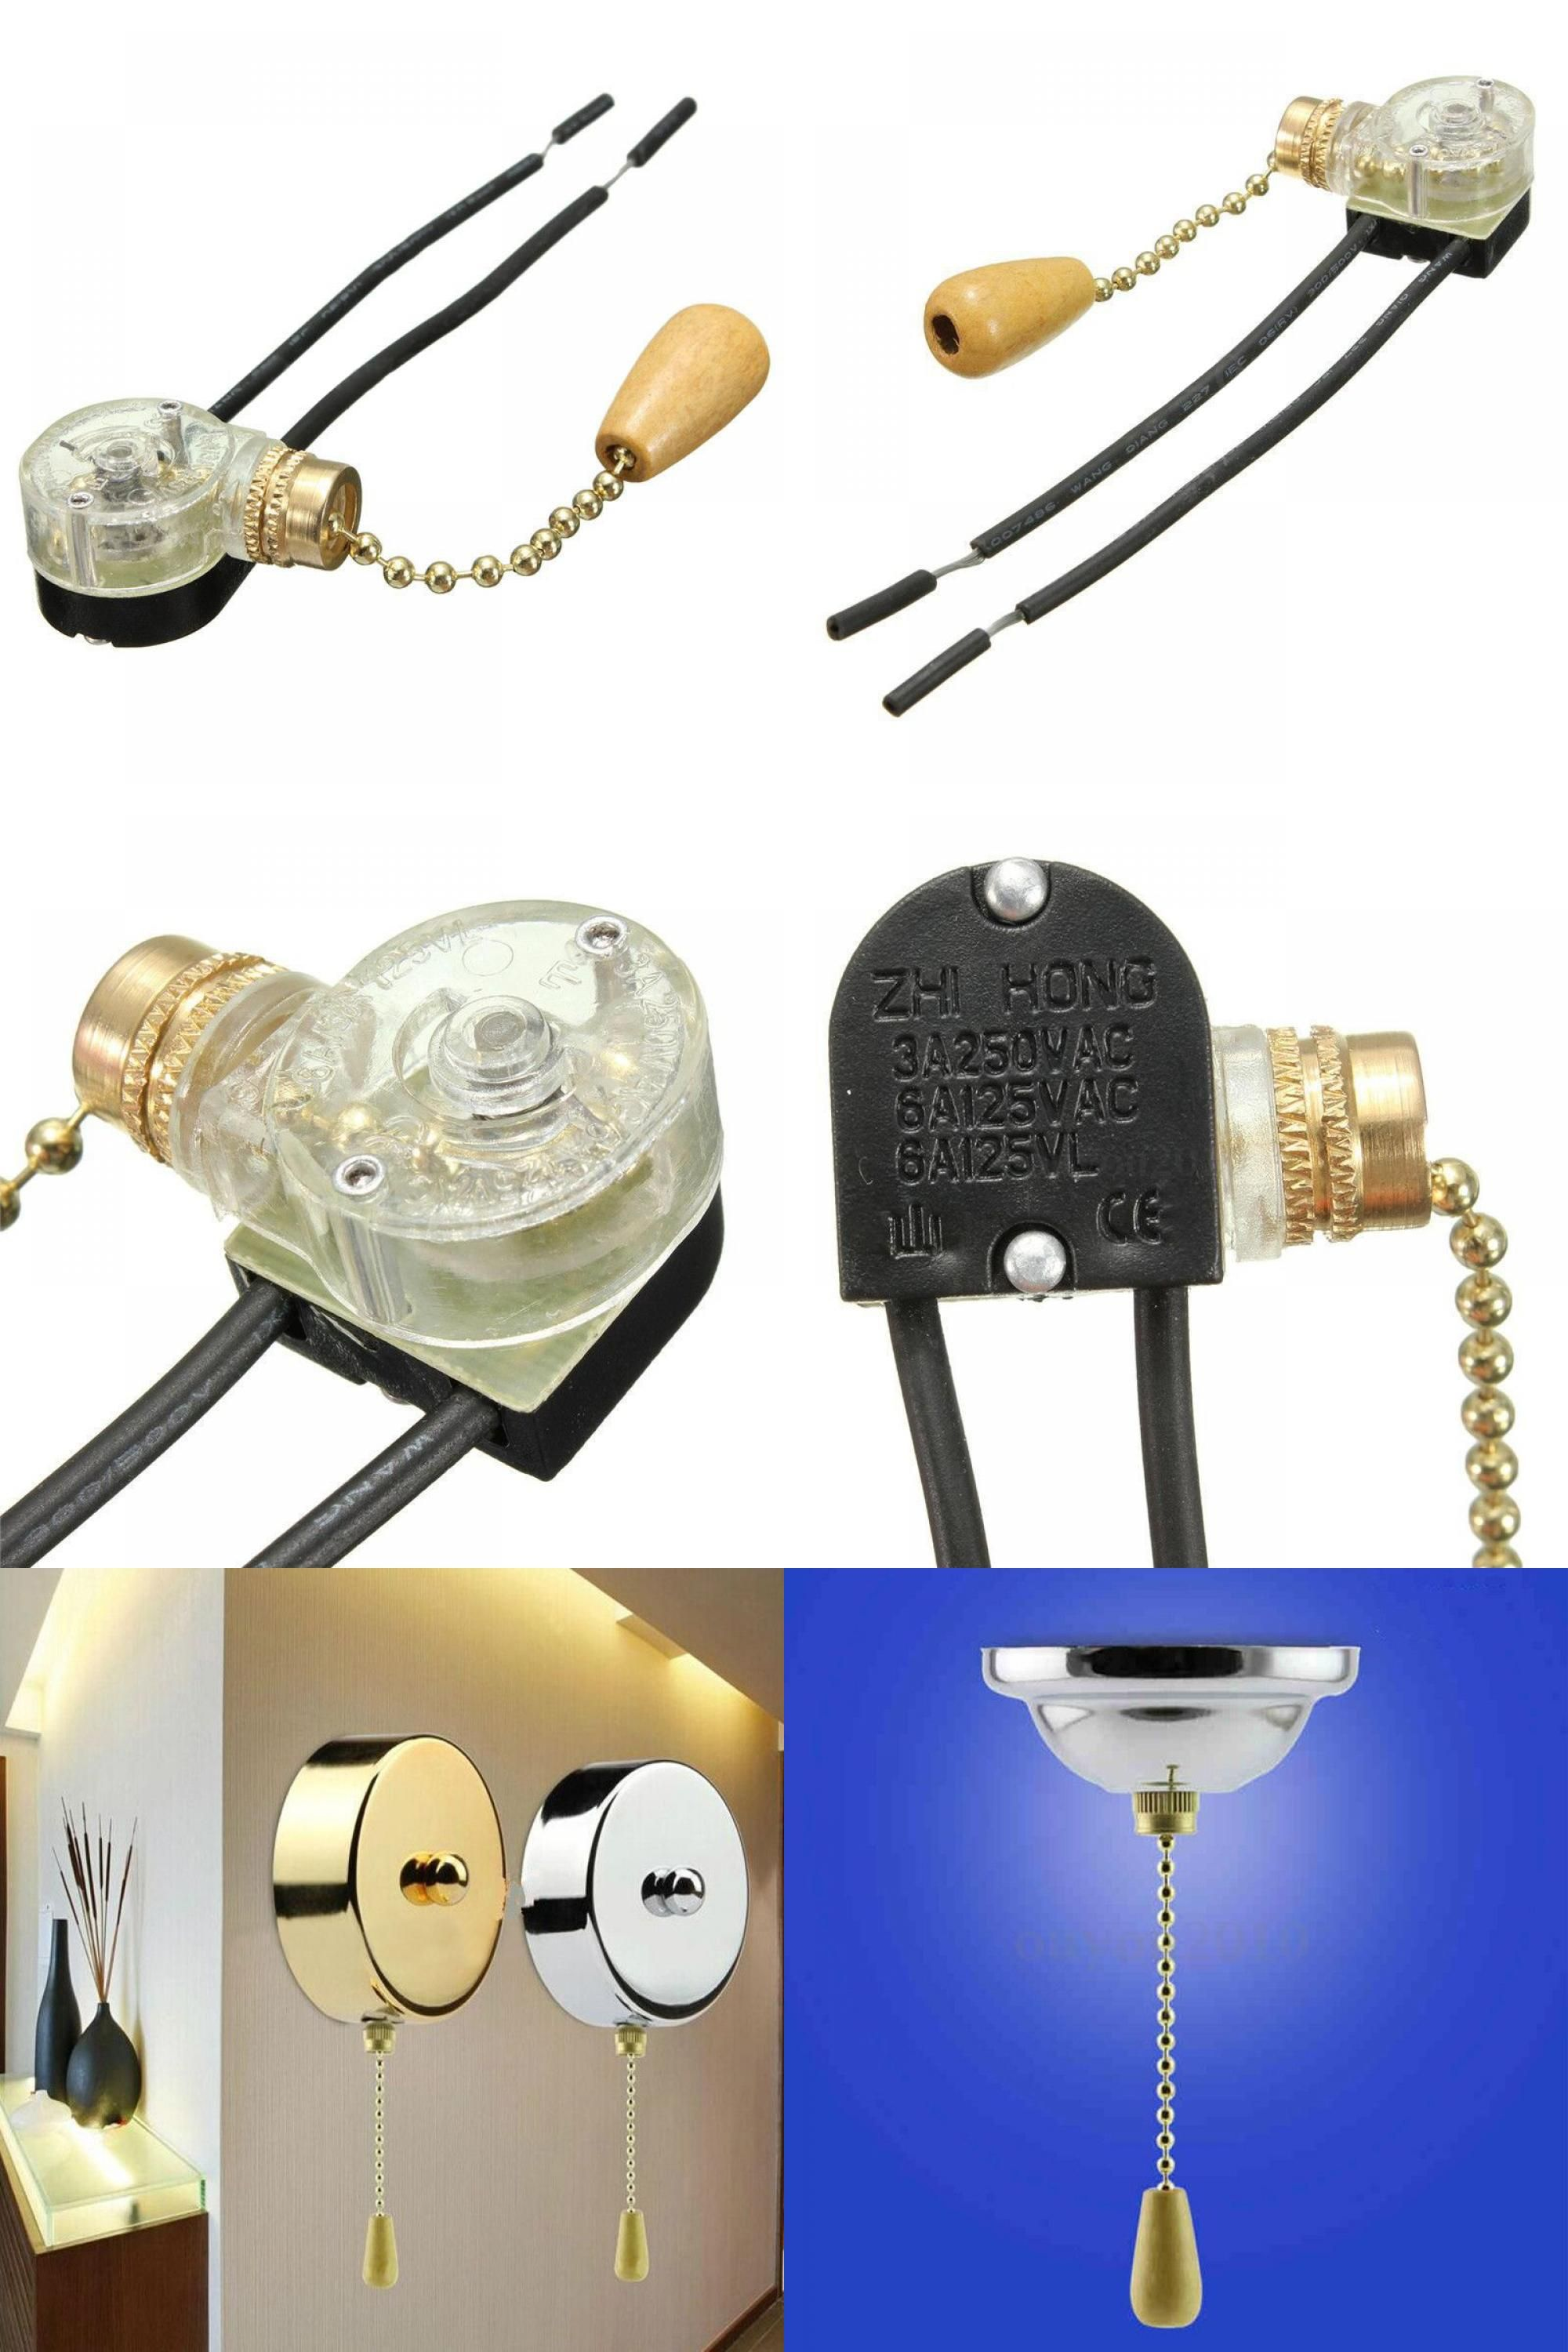 Visit to buy high quality convenient ceiling fan light wall light